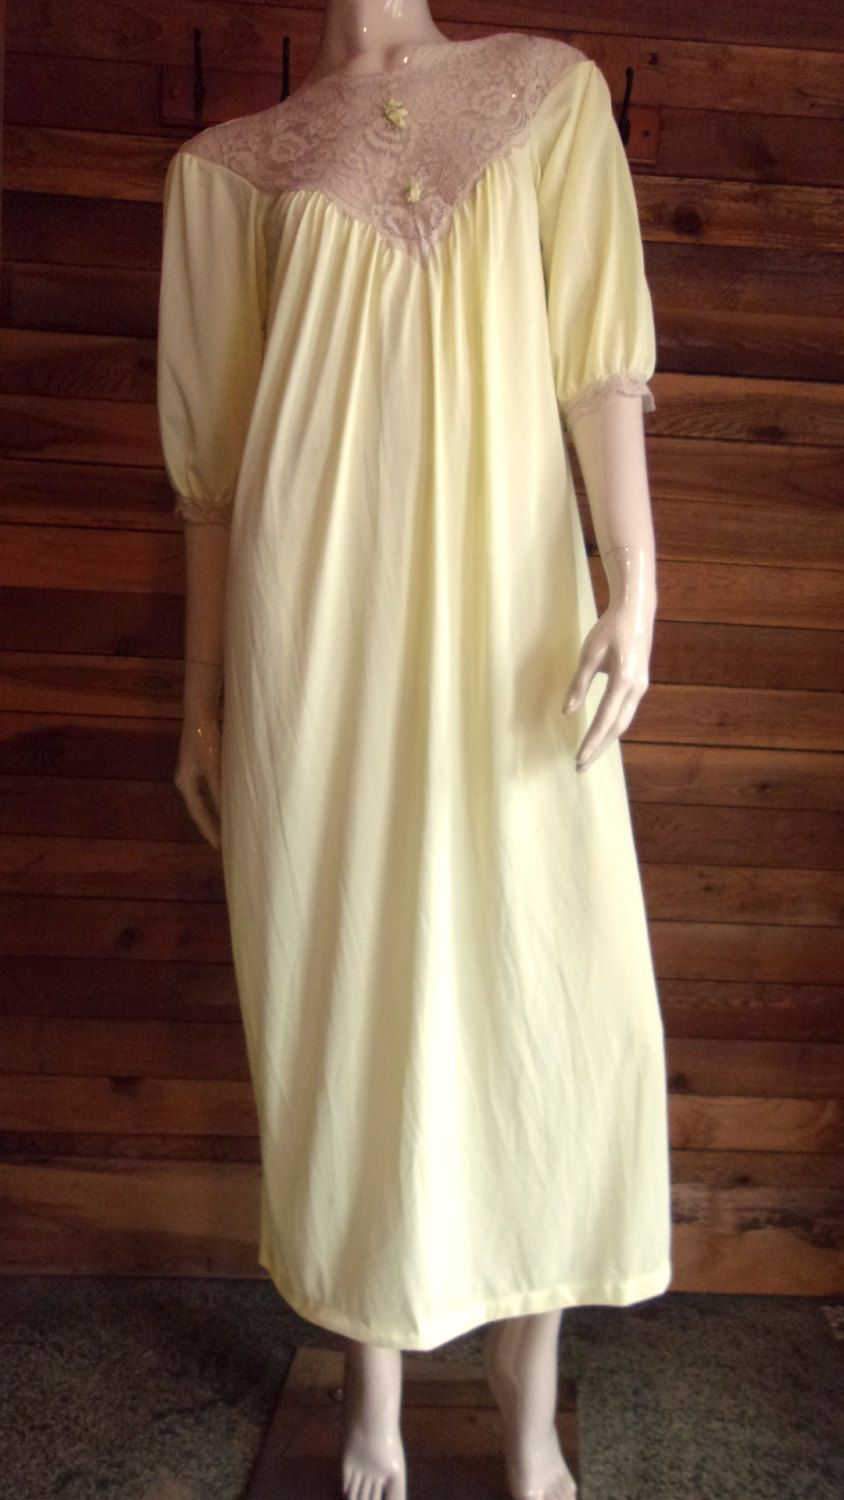 d6e1b1715eb0 Vintage Lingerie 60s ARISTOCRAFT Yellow Size Small Nightgown by  ReallyCoolClothes on Etsy